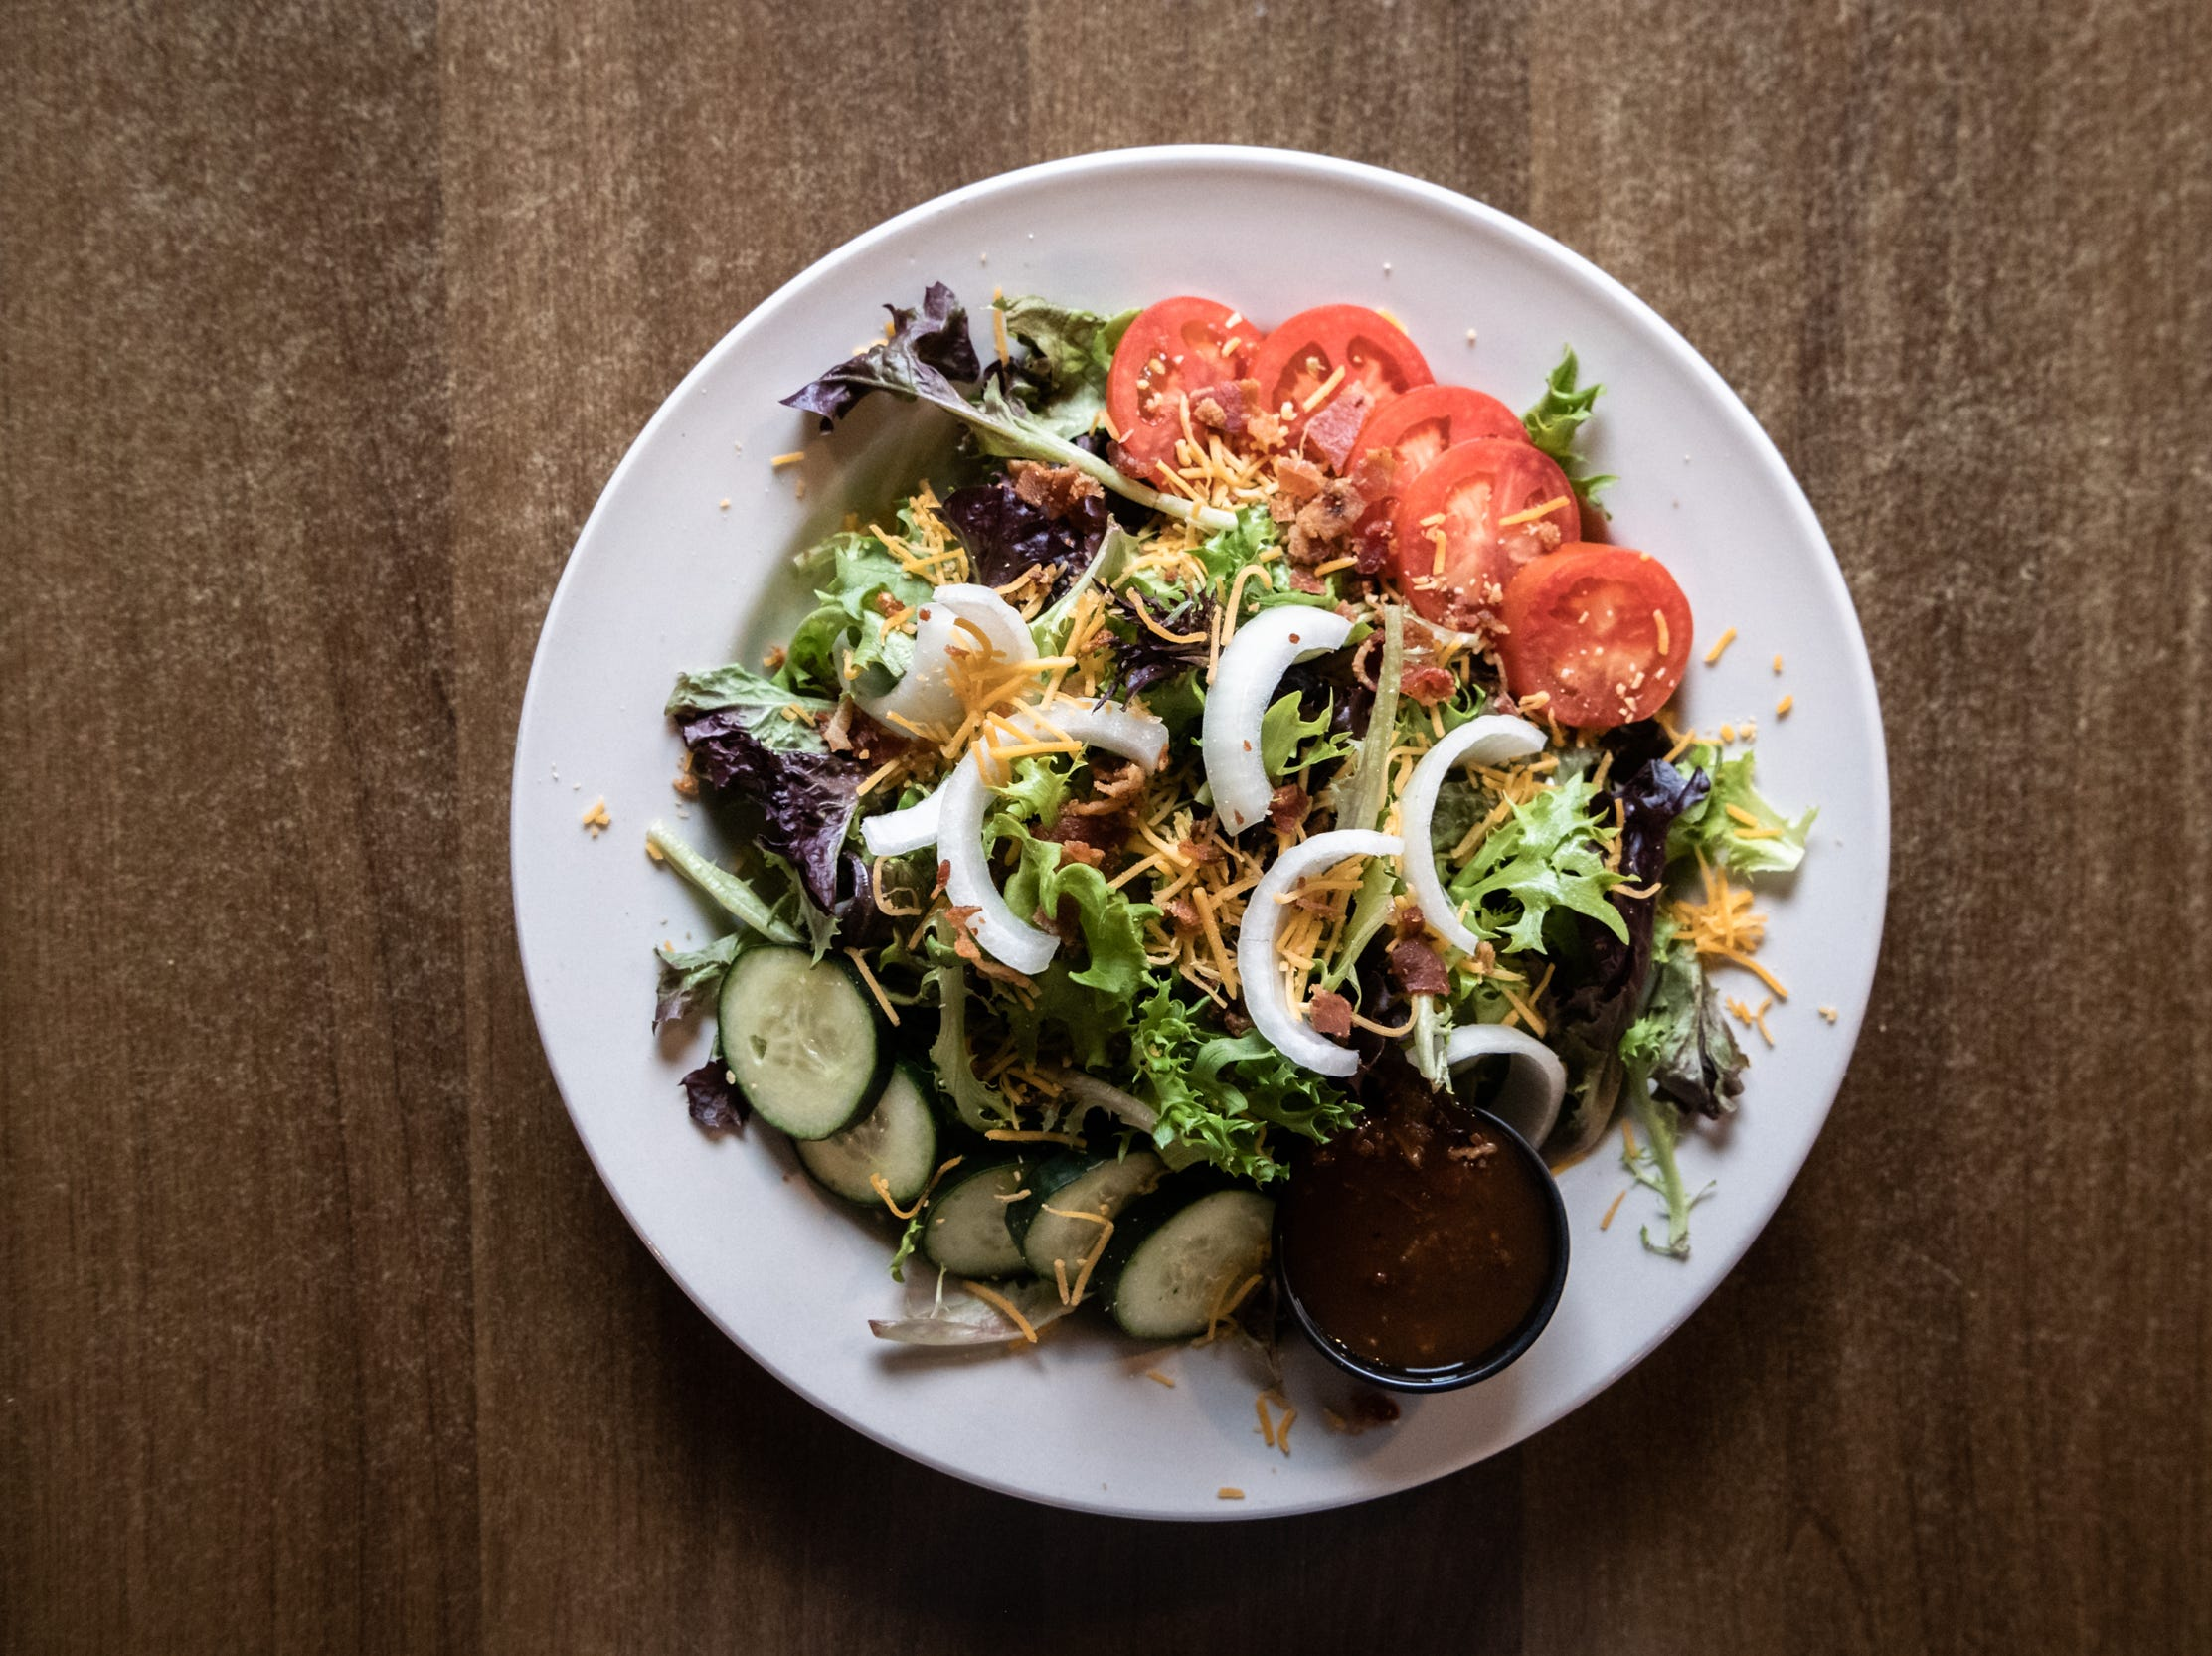 The Southern Porch salad with spring mix, tomatoes, cucumbers, onions, bacon bits, cheese and Southern Porch house dressing, offered at Southern Porch restaurant in Canton.